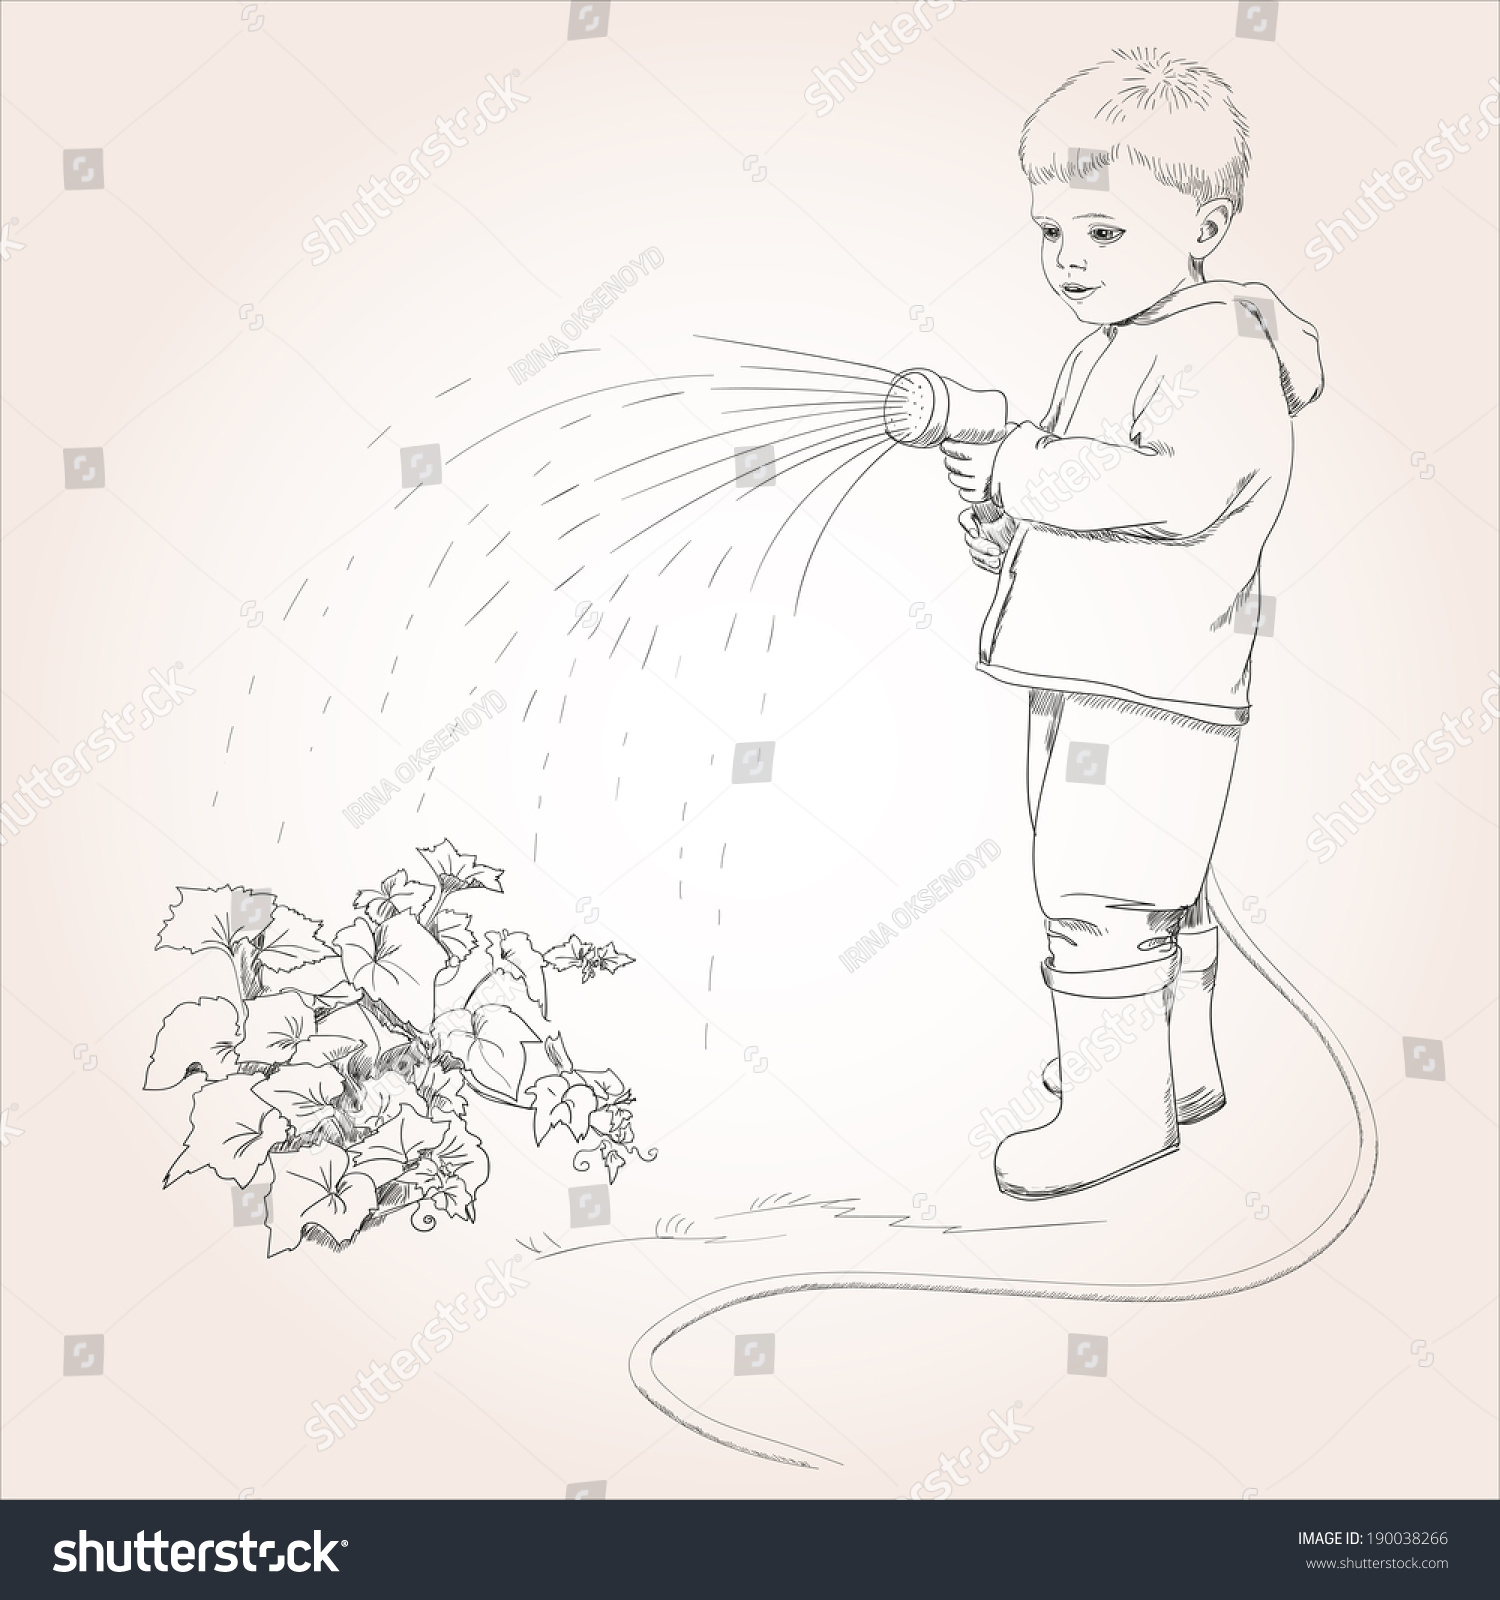 Vegetable garden sketch - Sketch Of A Boy With Garden Hose Watering Vegetable Garden